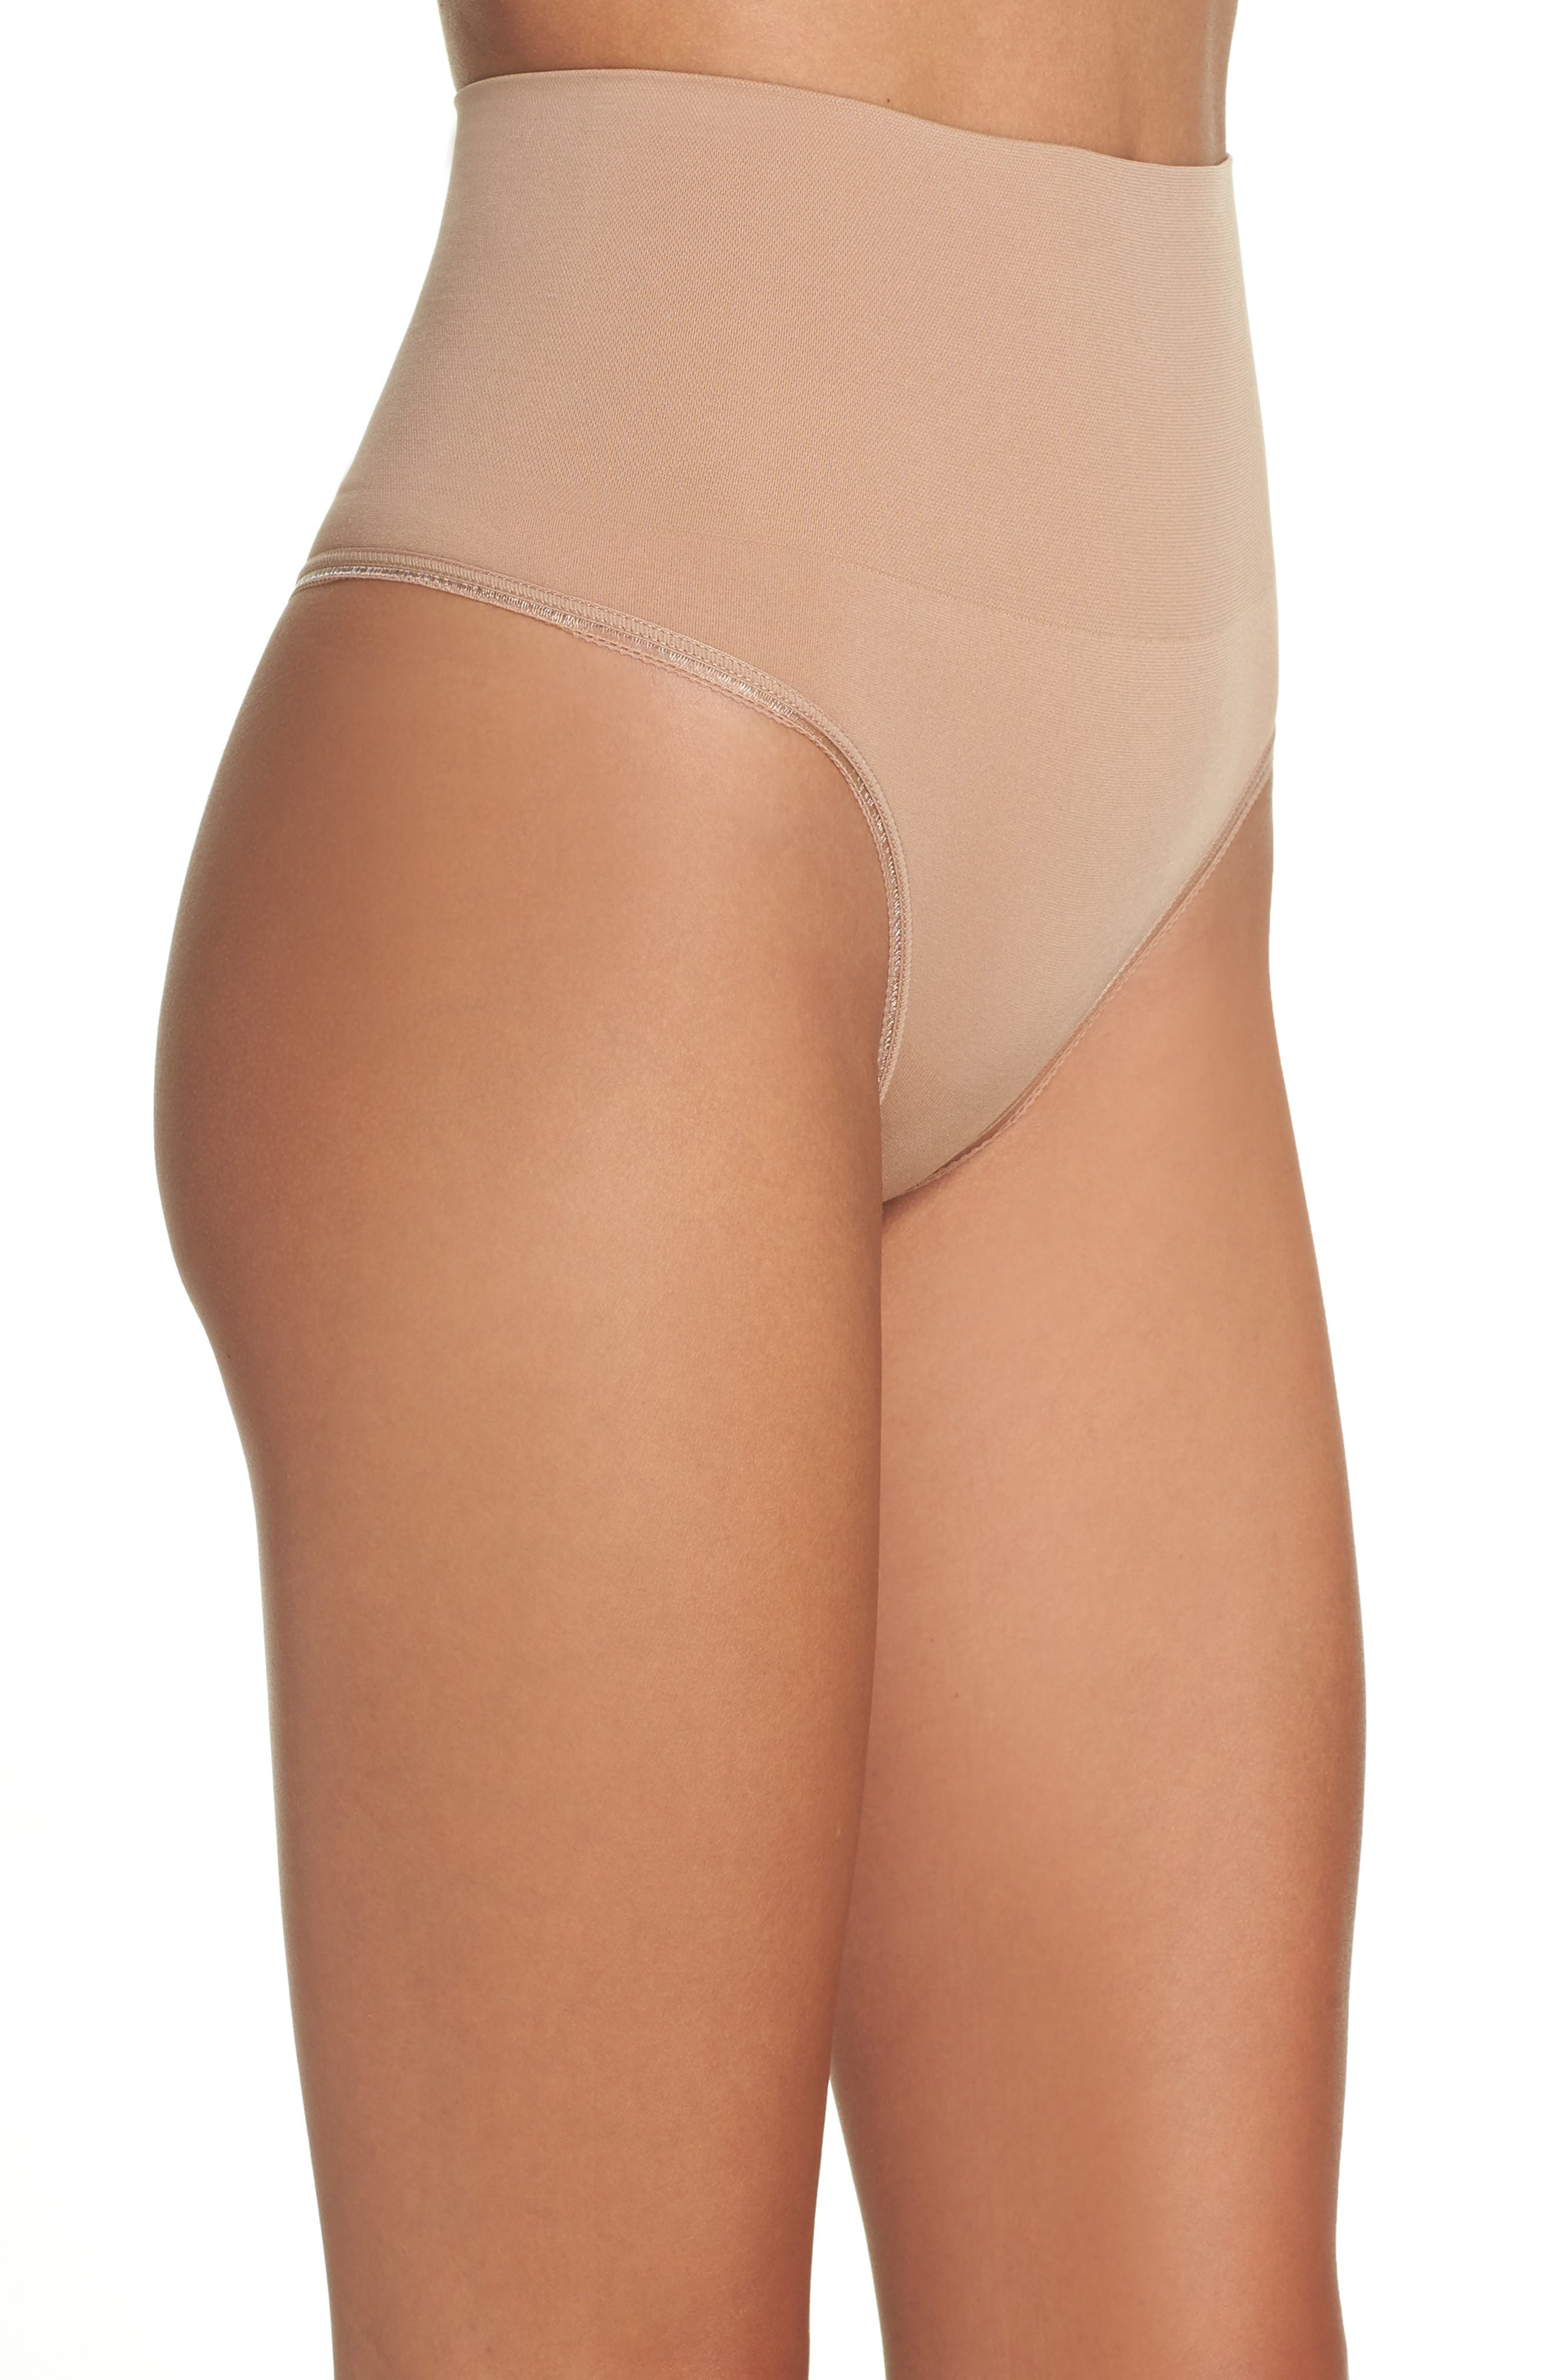 Ultralight Seamless Shaping Thong,                             Alternate thumbnail 3, color,                             Almond